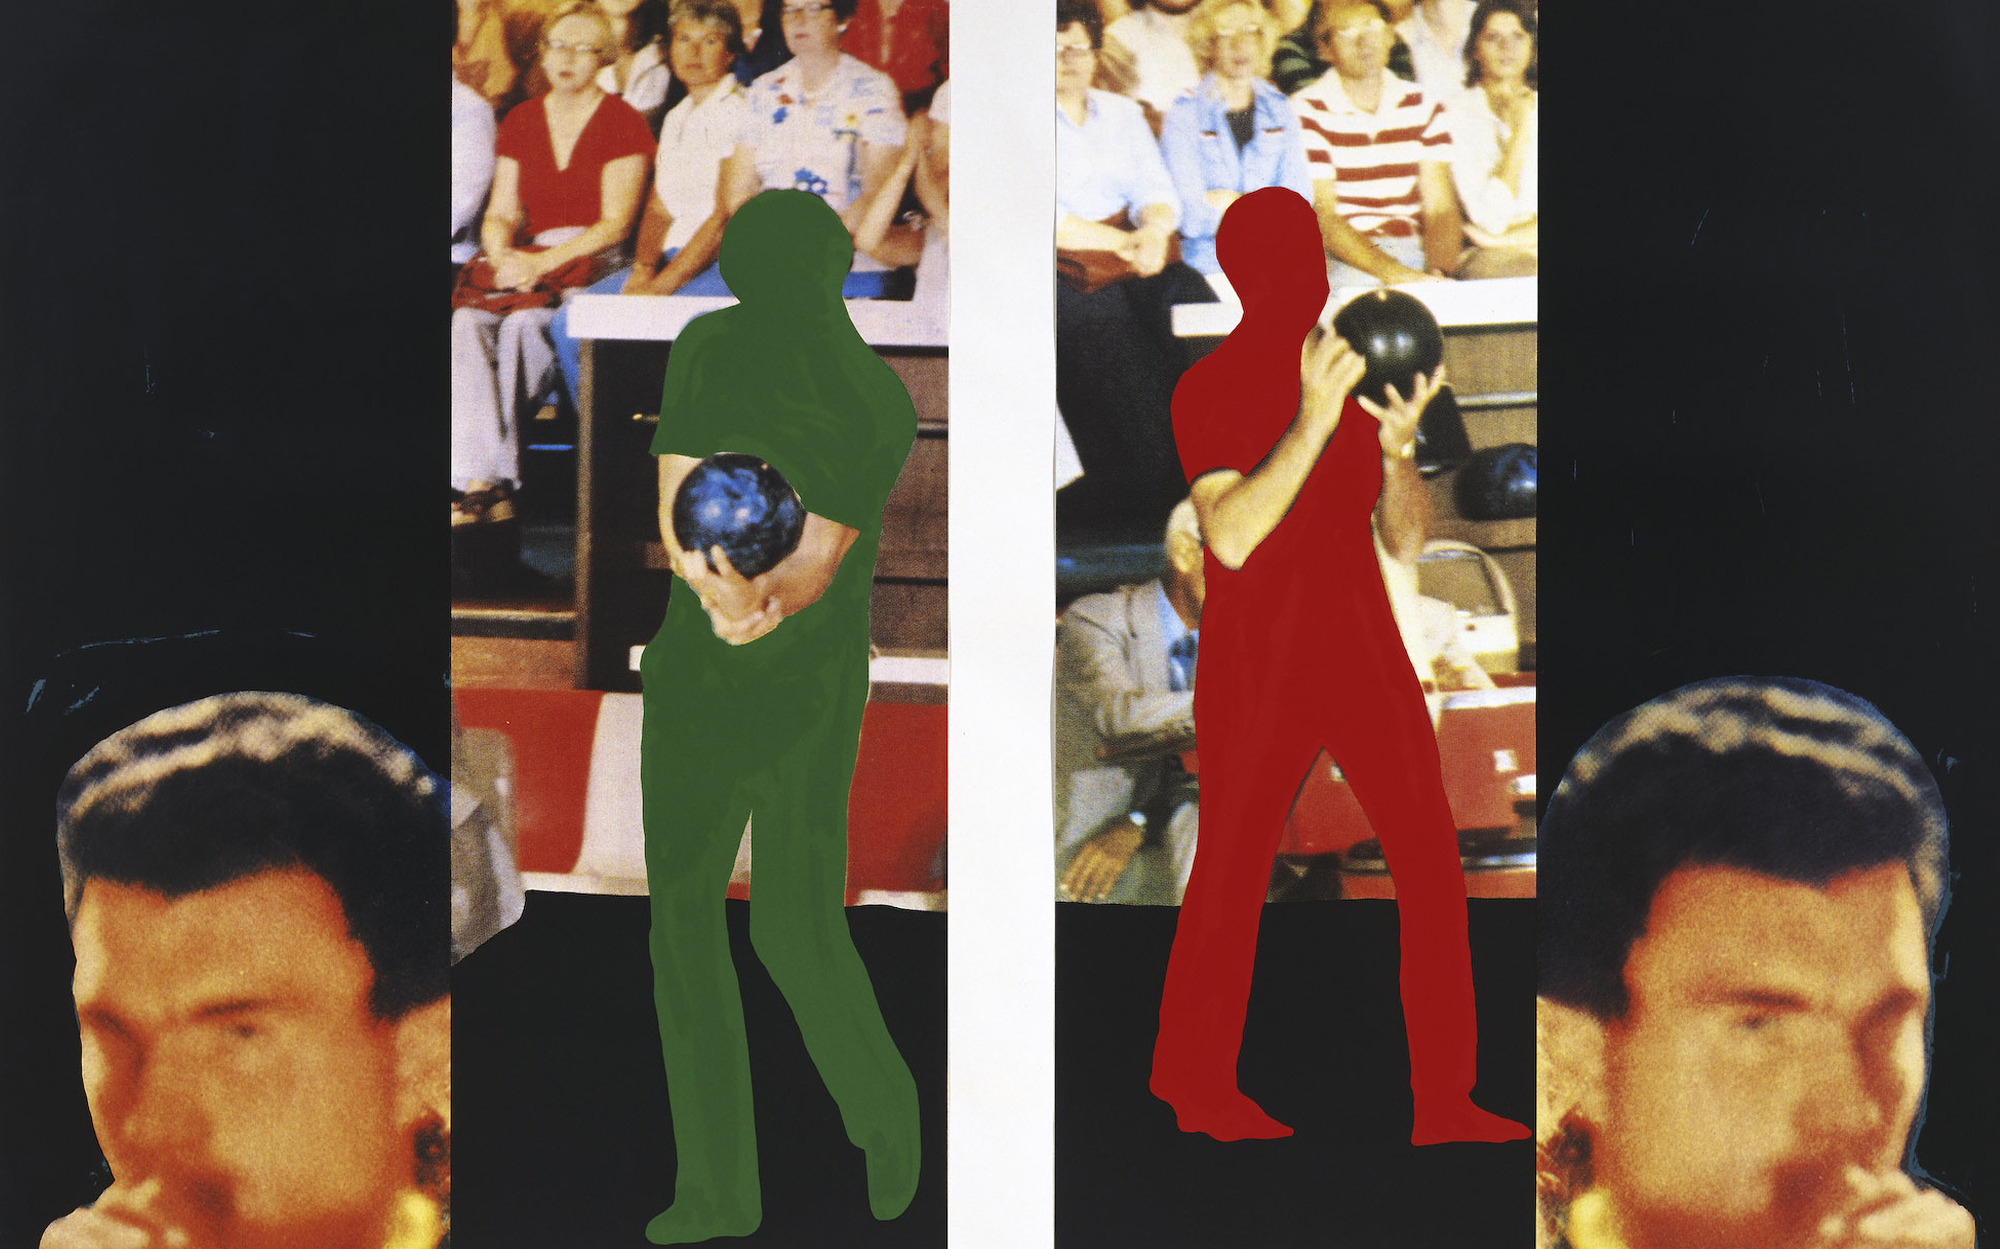 Two bowlers (with questioning person)